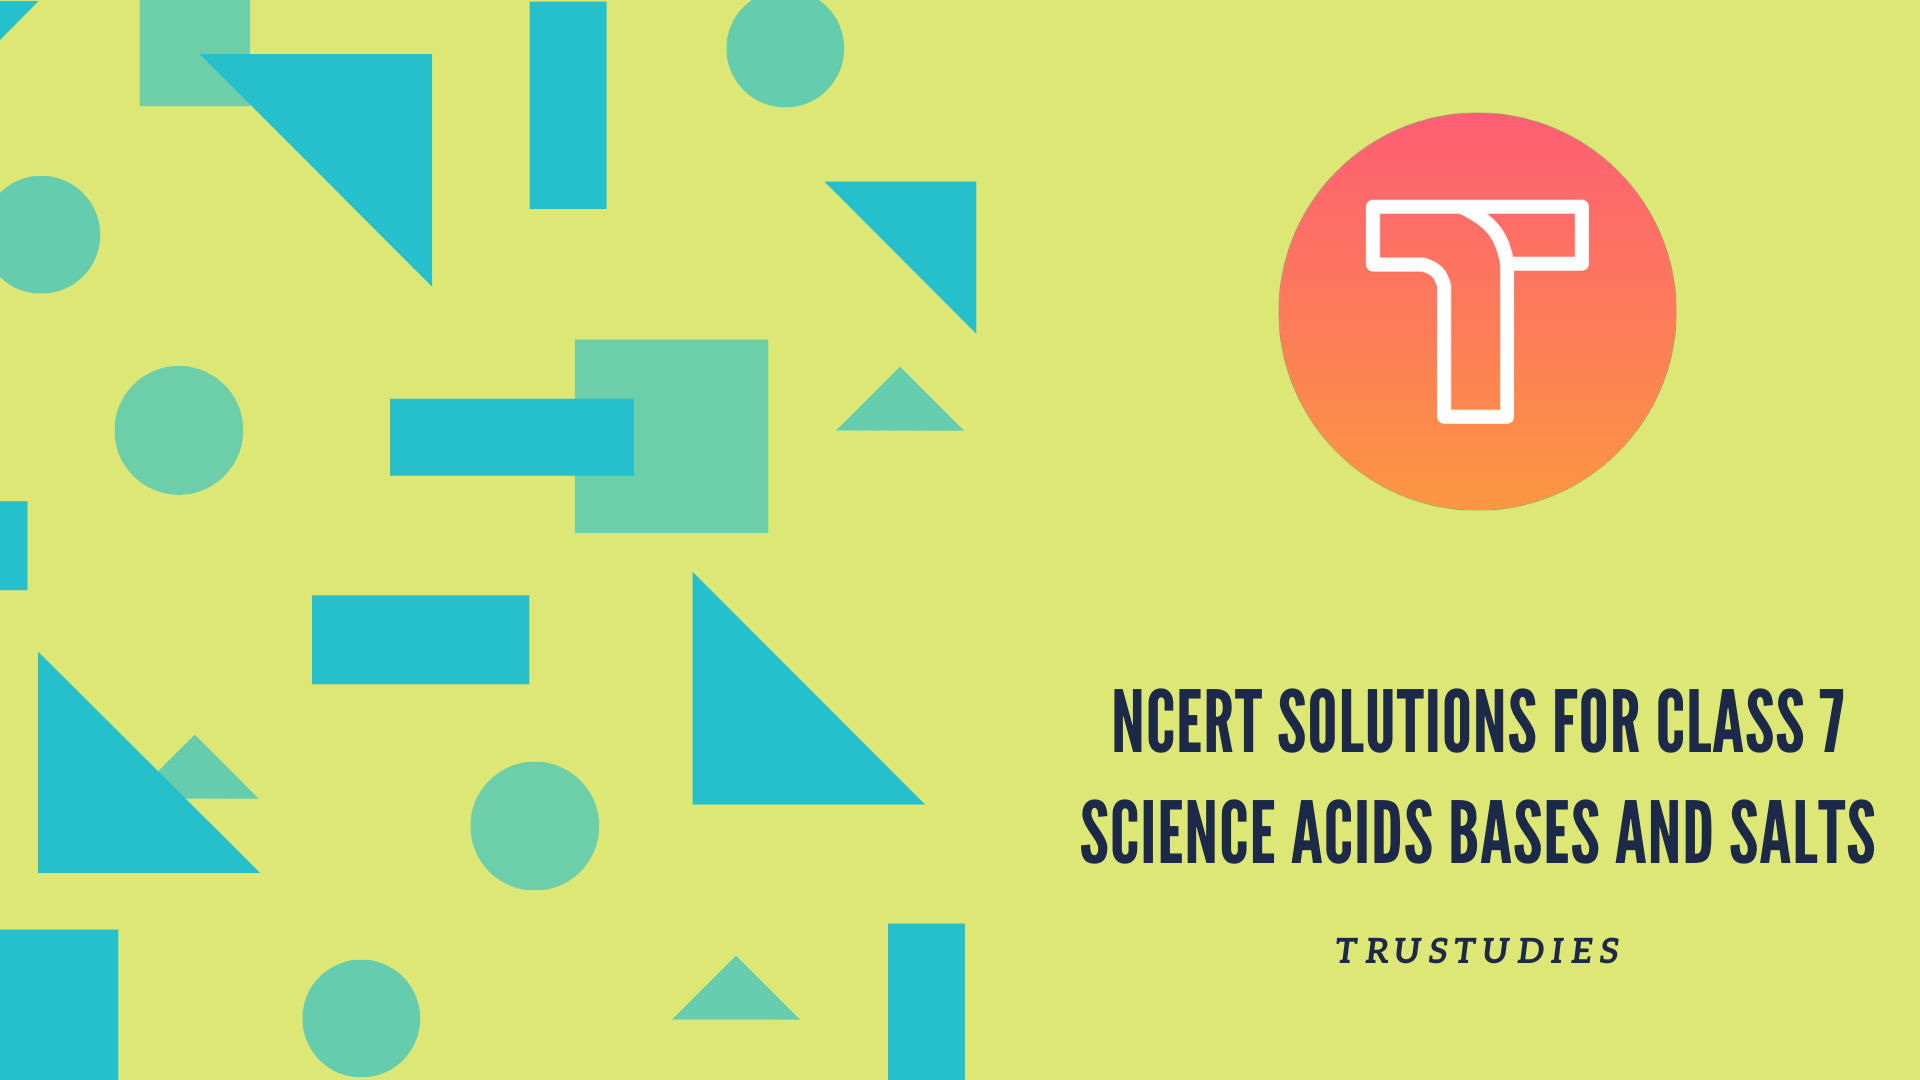 NCERT solutions for class 7 science chapter 5 acids bases salts banner image